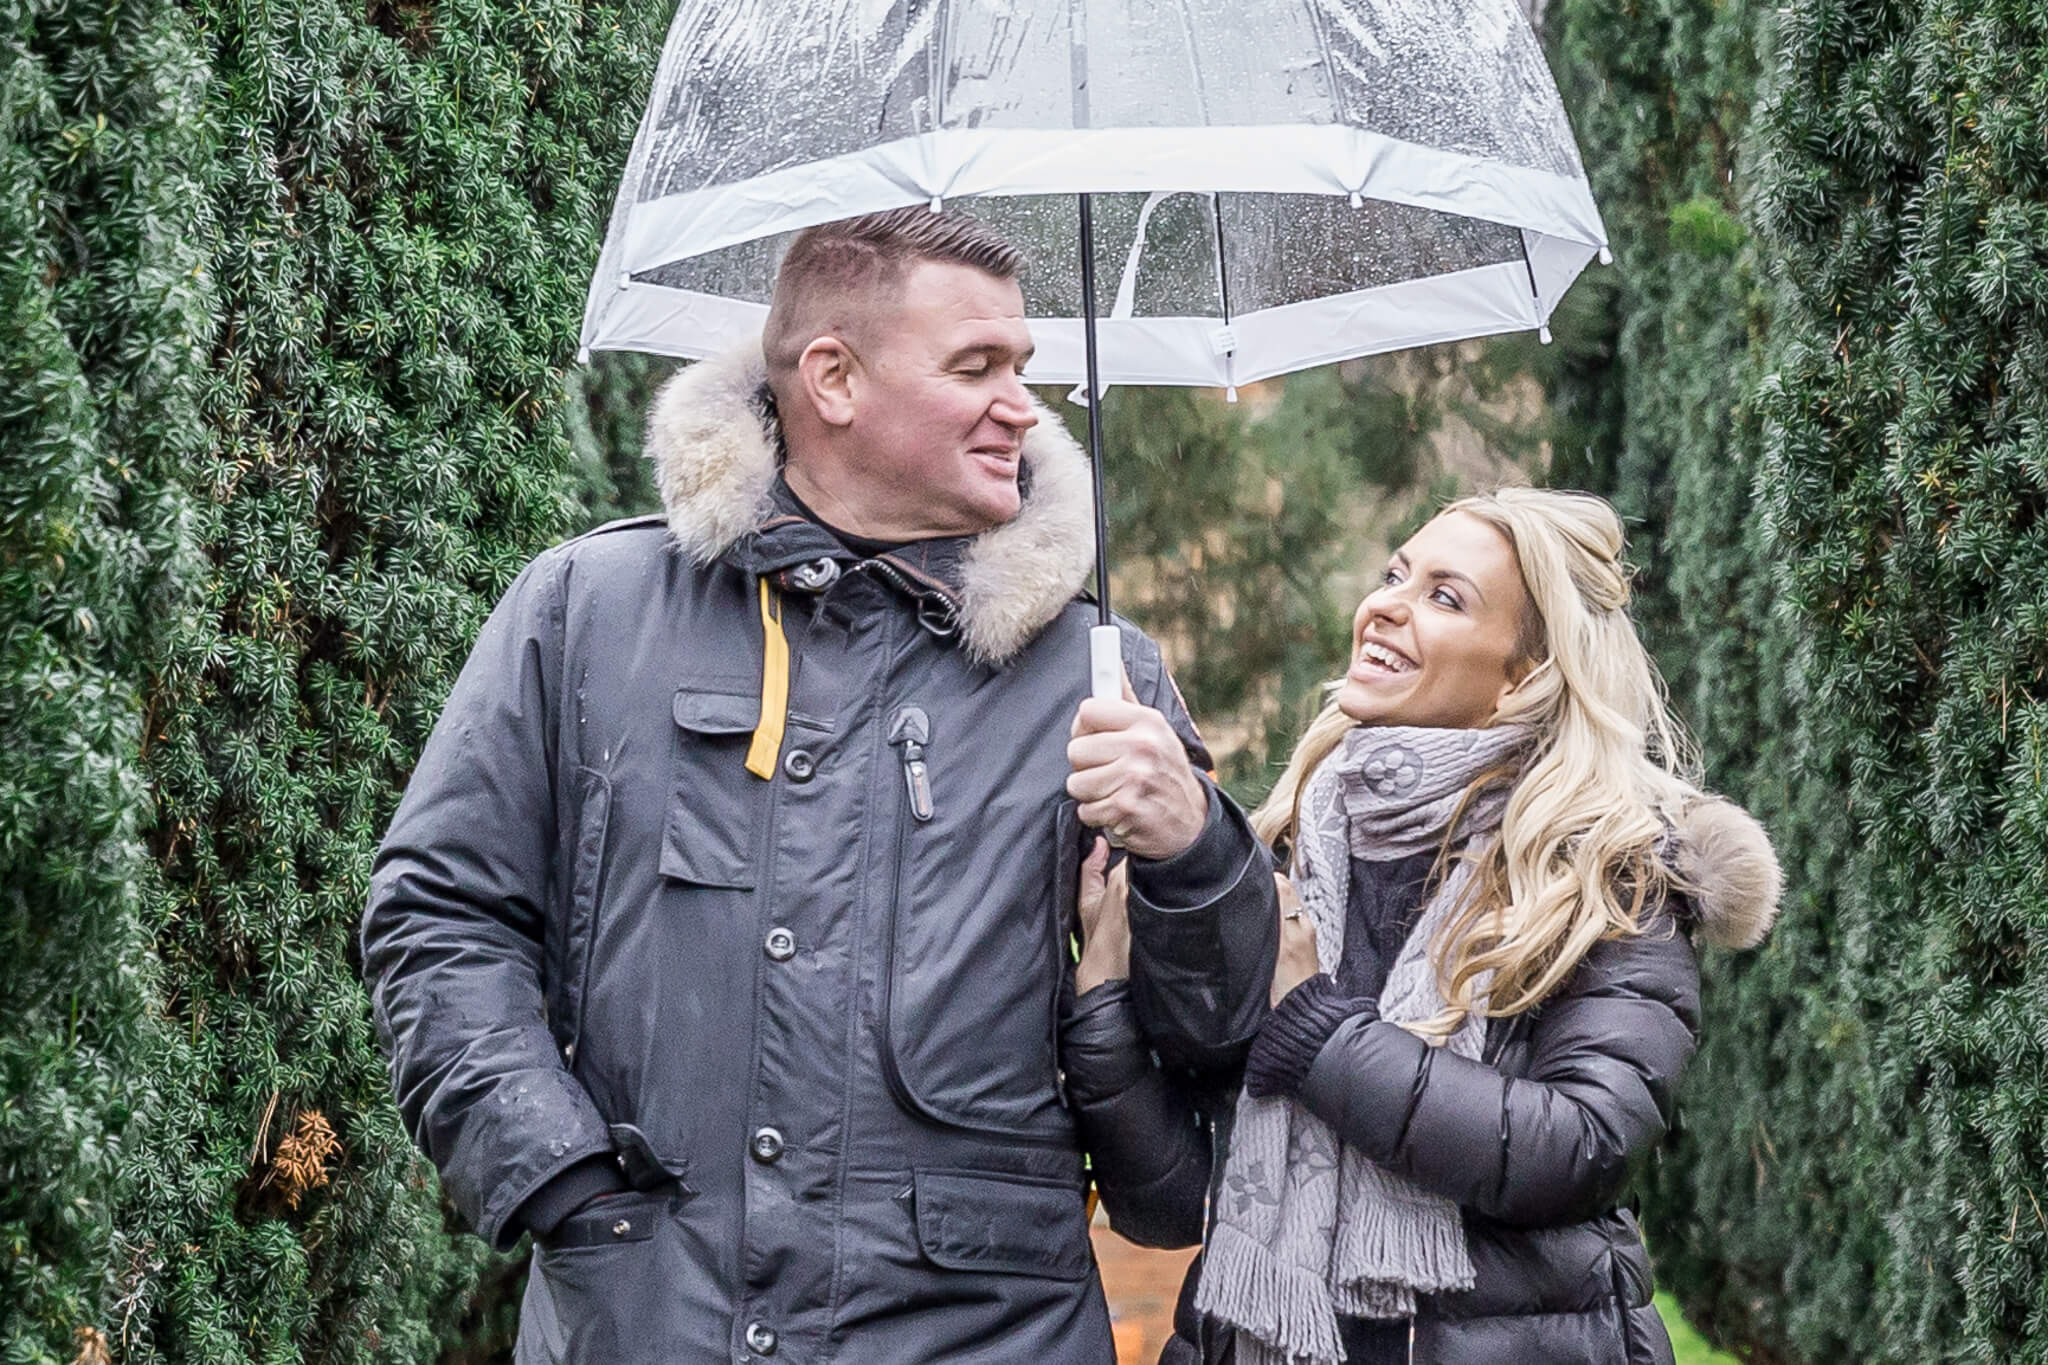 Couple under umbrella on a rainy day engagement photo taken at The Grove at Hertfordshire by Natalie Chiverton Photography